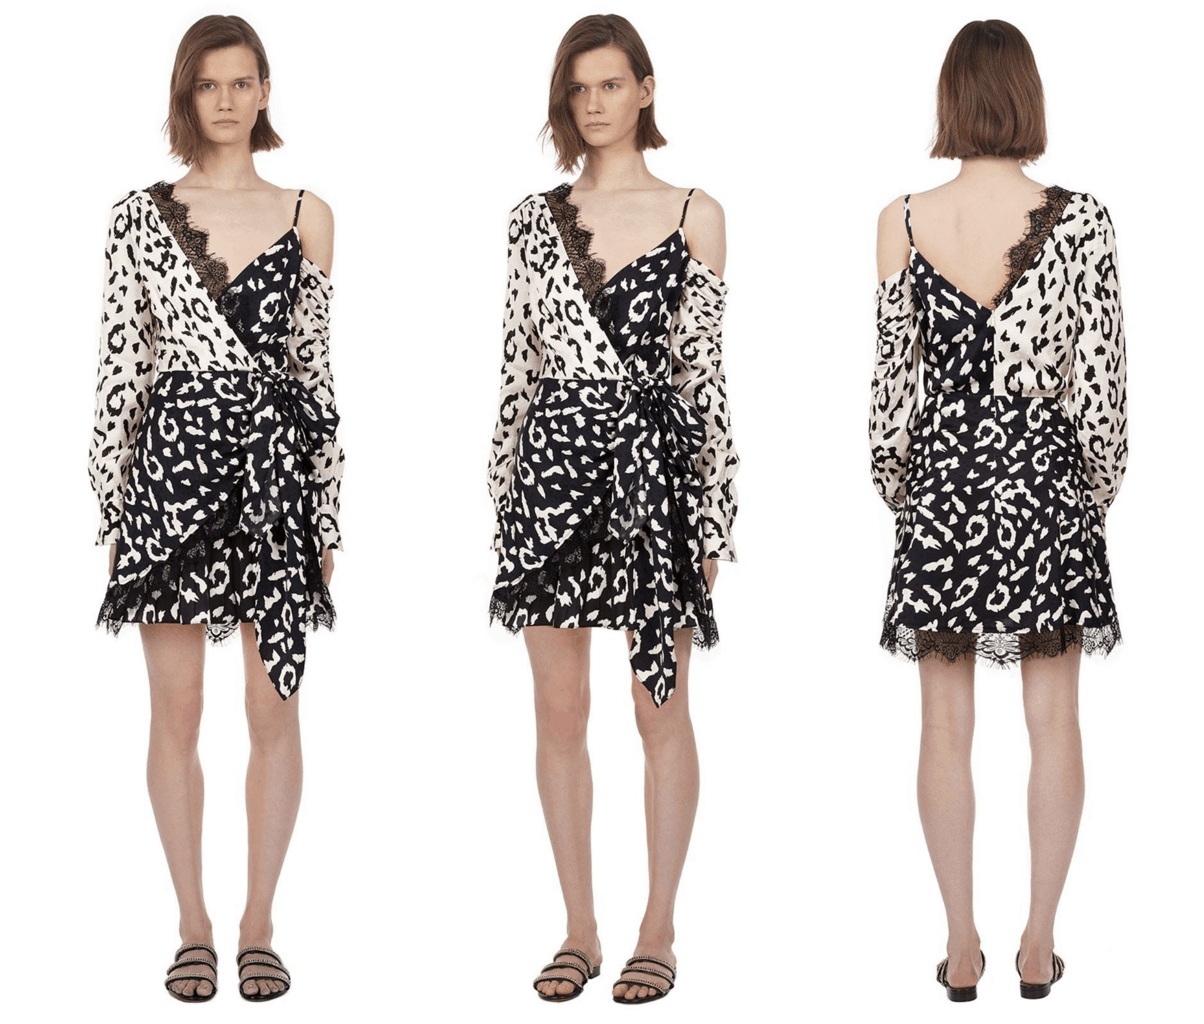 mode in dress with inverted leopard prints